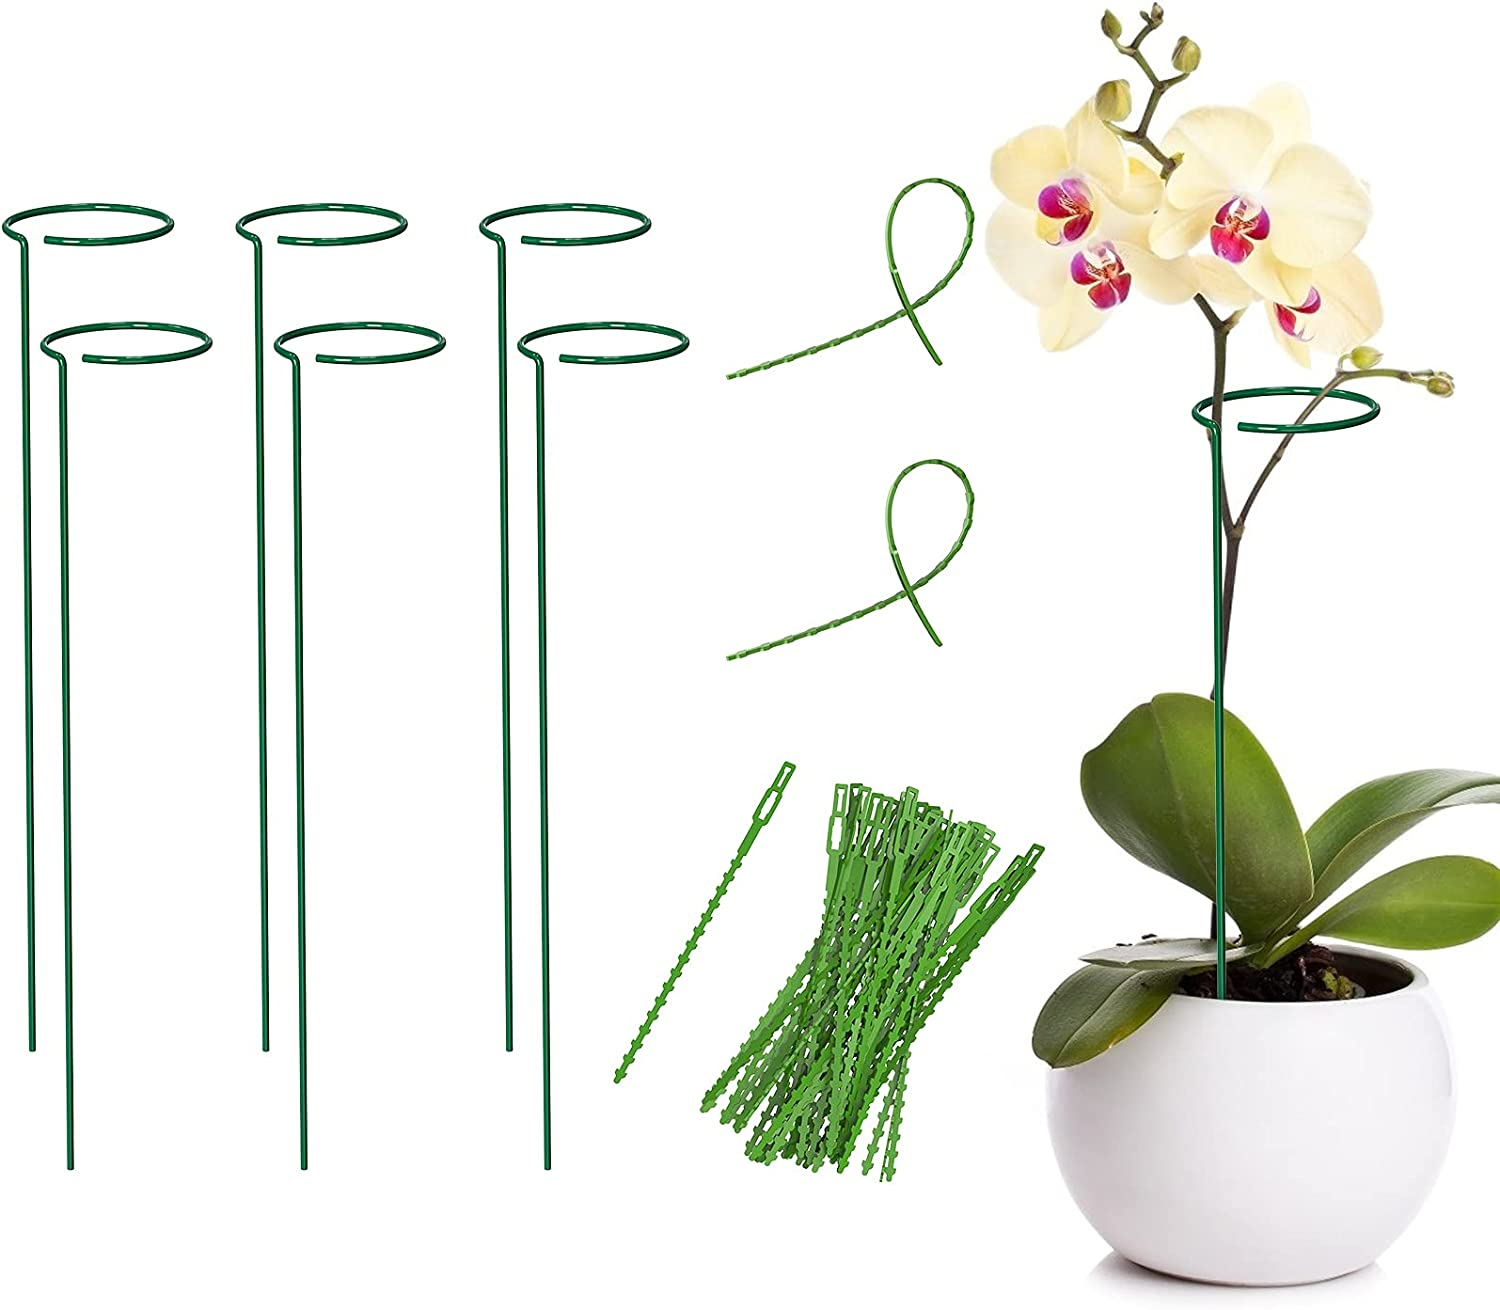 YHmall 6 Pack Plant Support Stakes with 50 Pcs Adjustable Plastic Twist Ties, Single Stem Cage Plant Stakes for Garden Flowers Rose Tomatoes Peony Lily Rose Herbs Vegetable